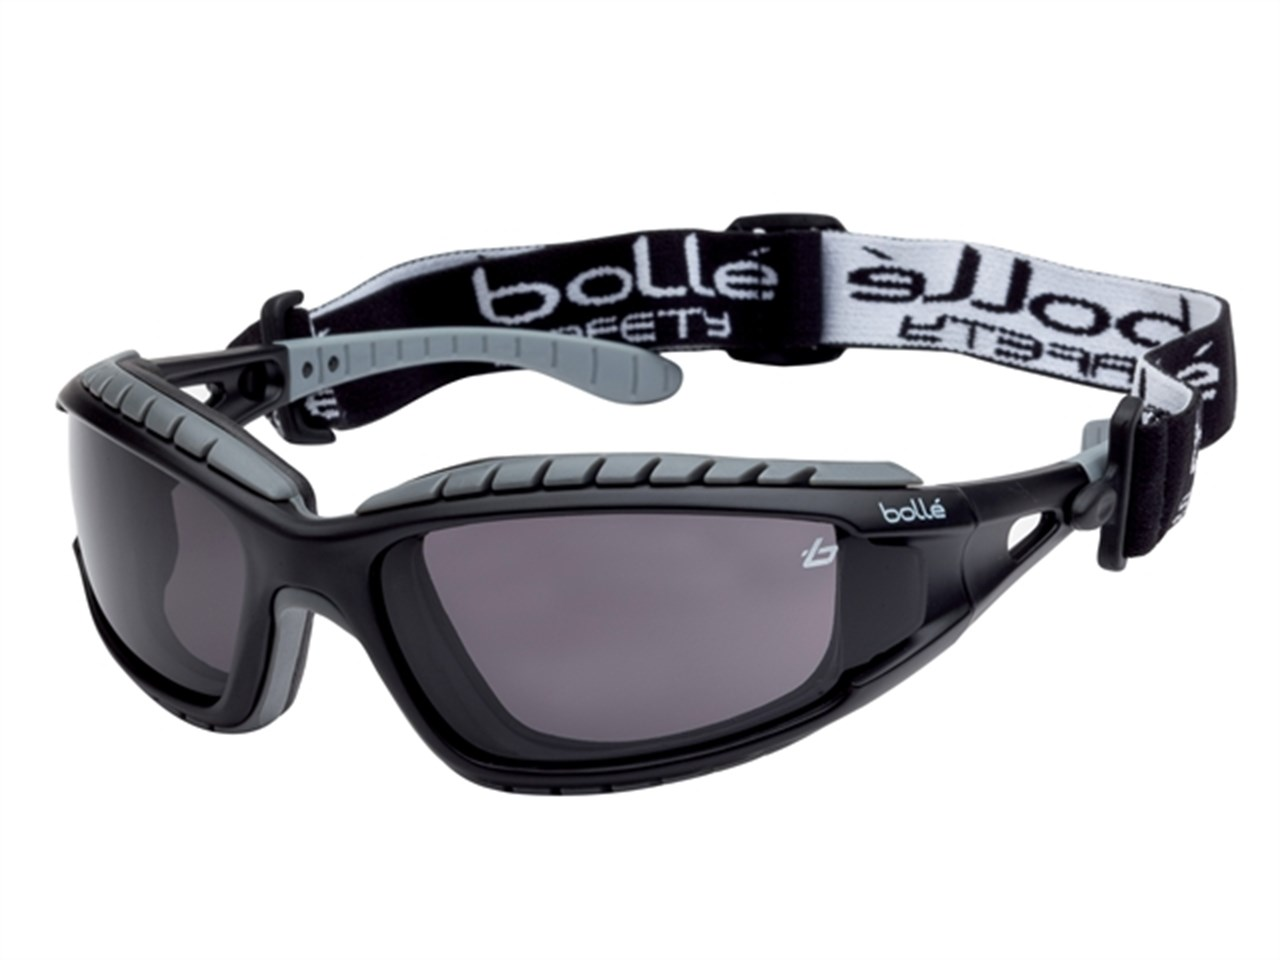 ca4adc139a Bolle TRACPSF Tracker Safety Glasses Vented Smoke